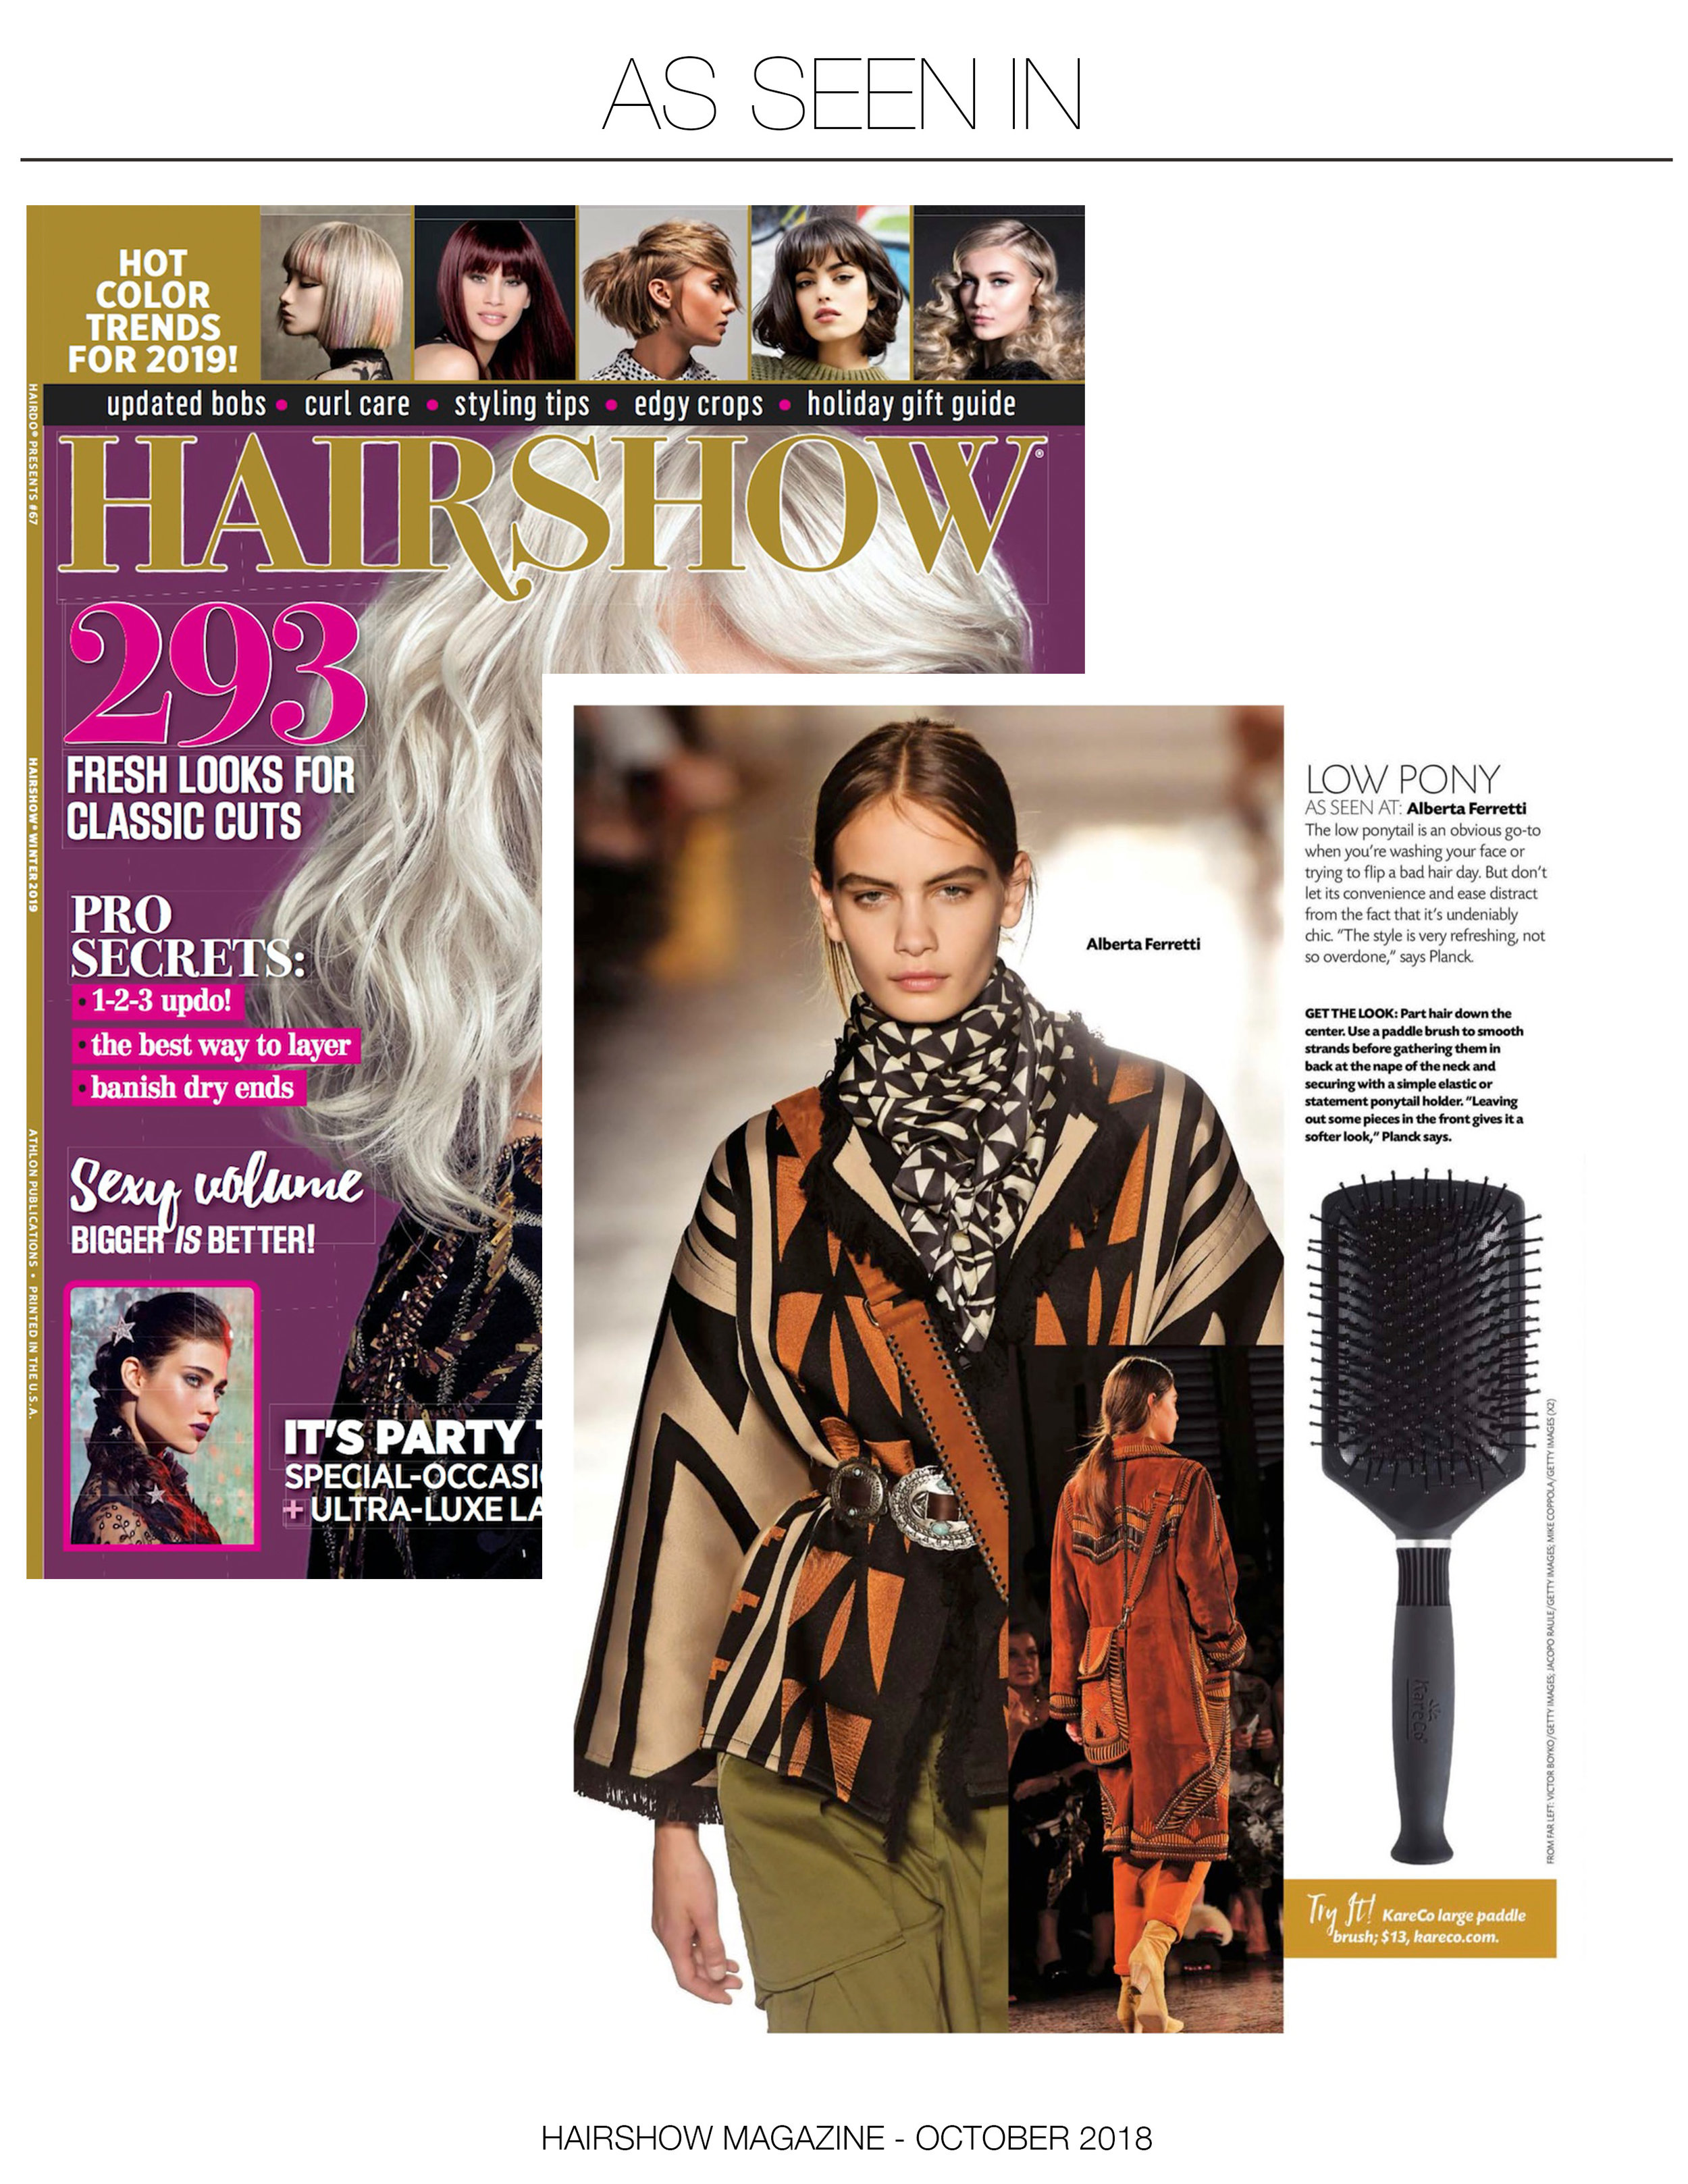 KareCo_HairshowMagazine_October2018.jpg